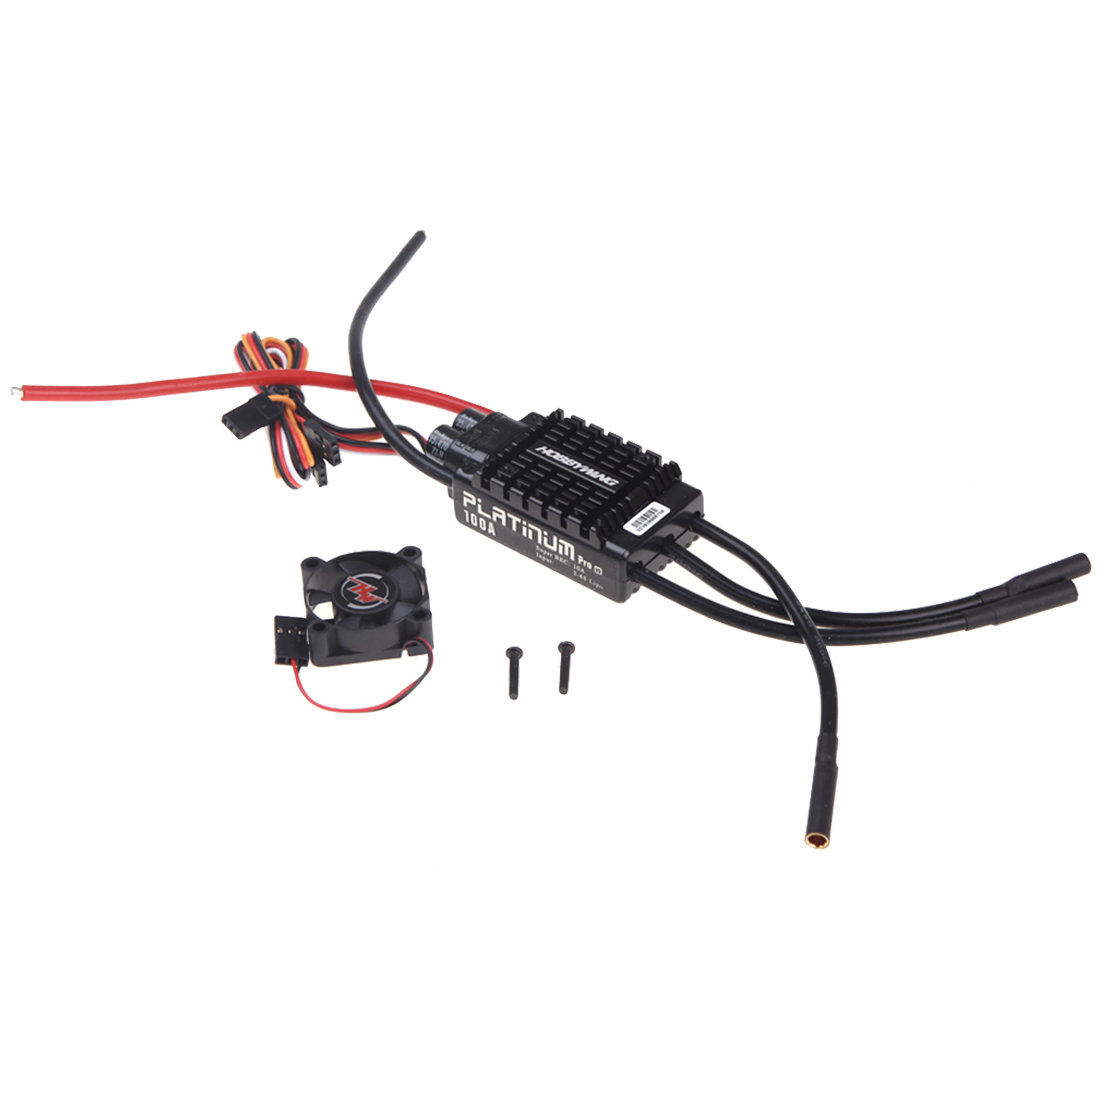 Hobbywing Platinum 100A V3 ESC for Align TREX 550 600 700 Helicopter 1pcs original hobbywing platinum 100a v3 rc model brushless esc for multicopter for align trex 550 600 700 rc helicopter fixed w